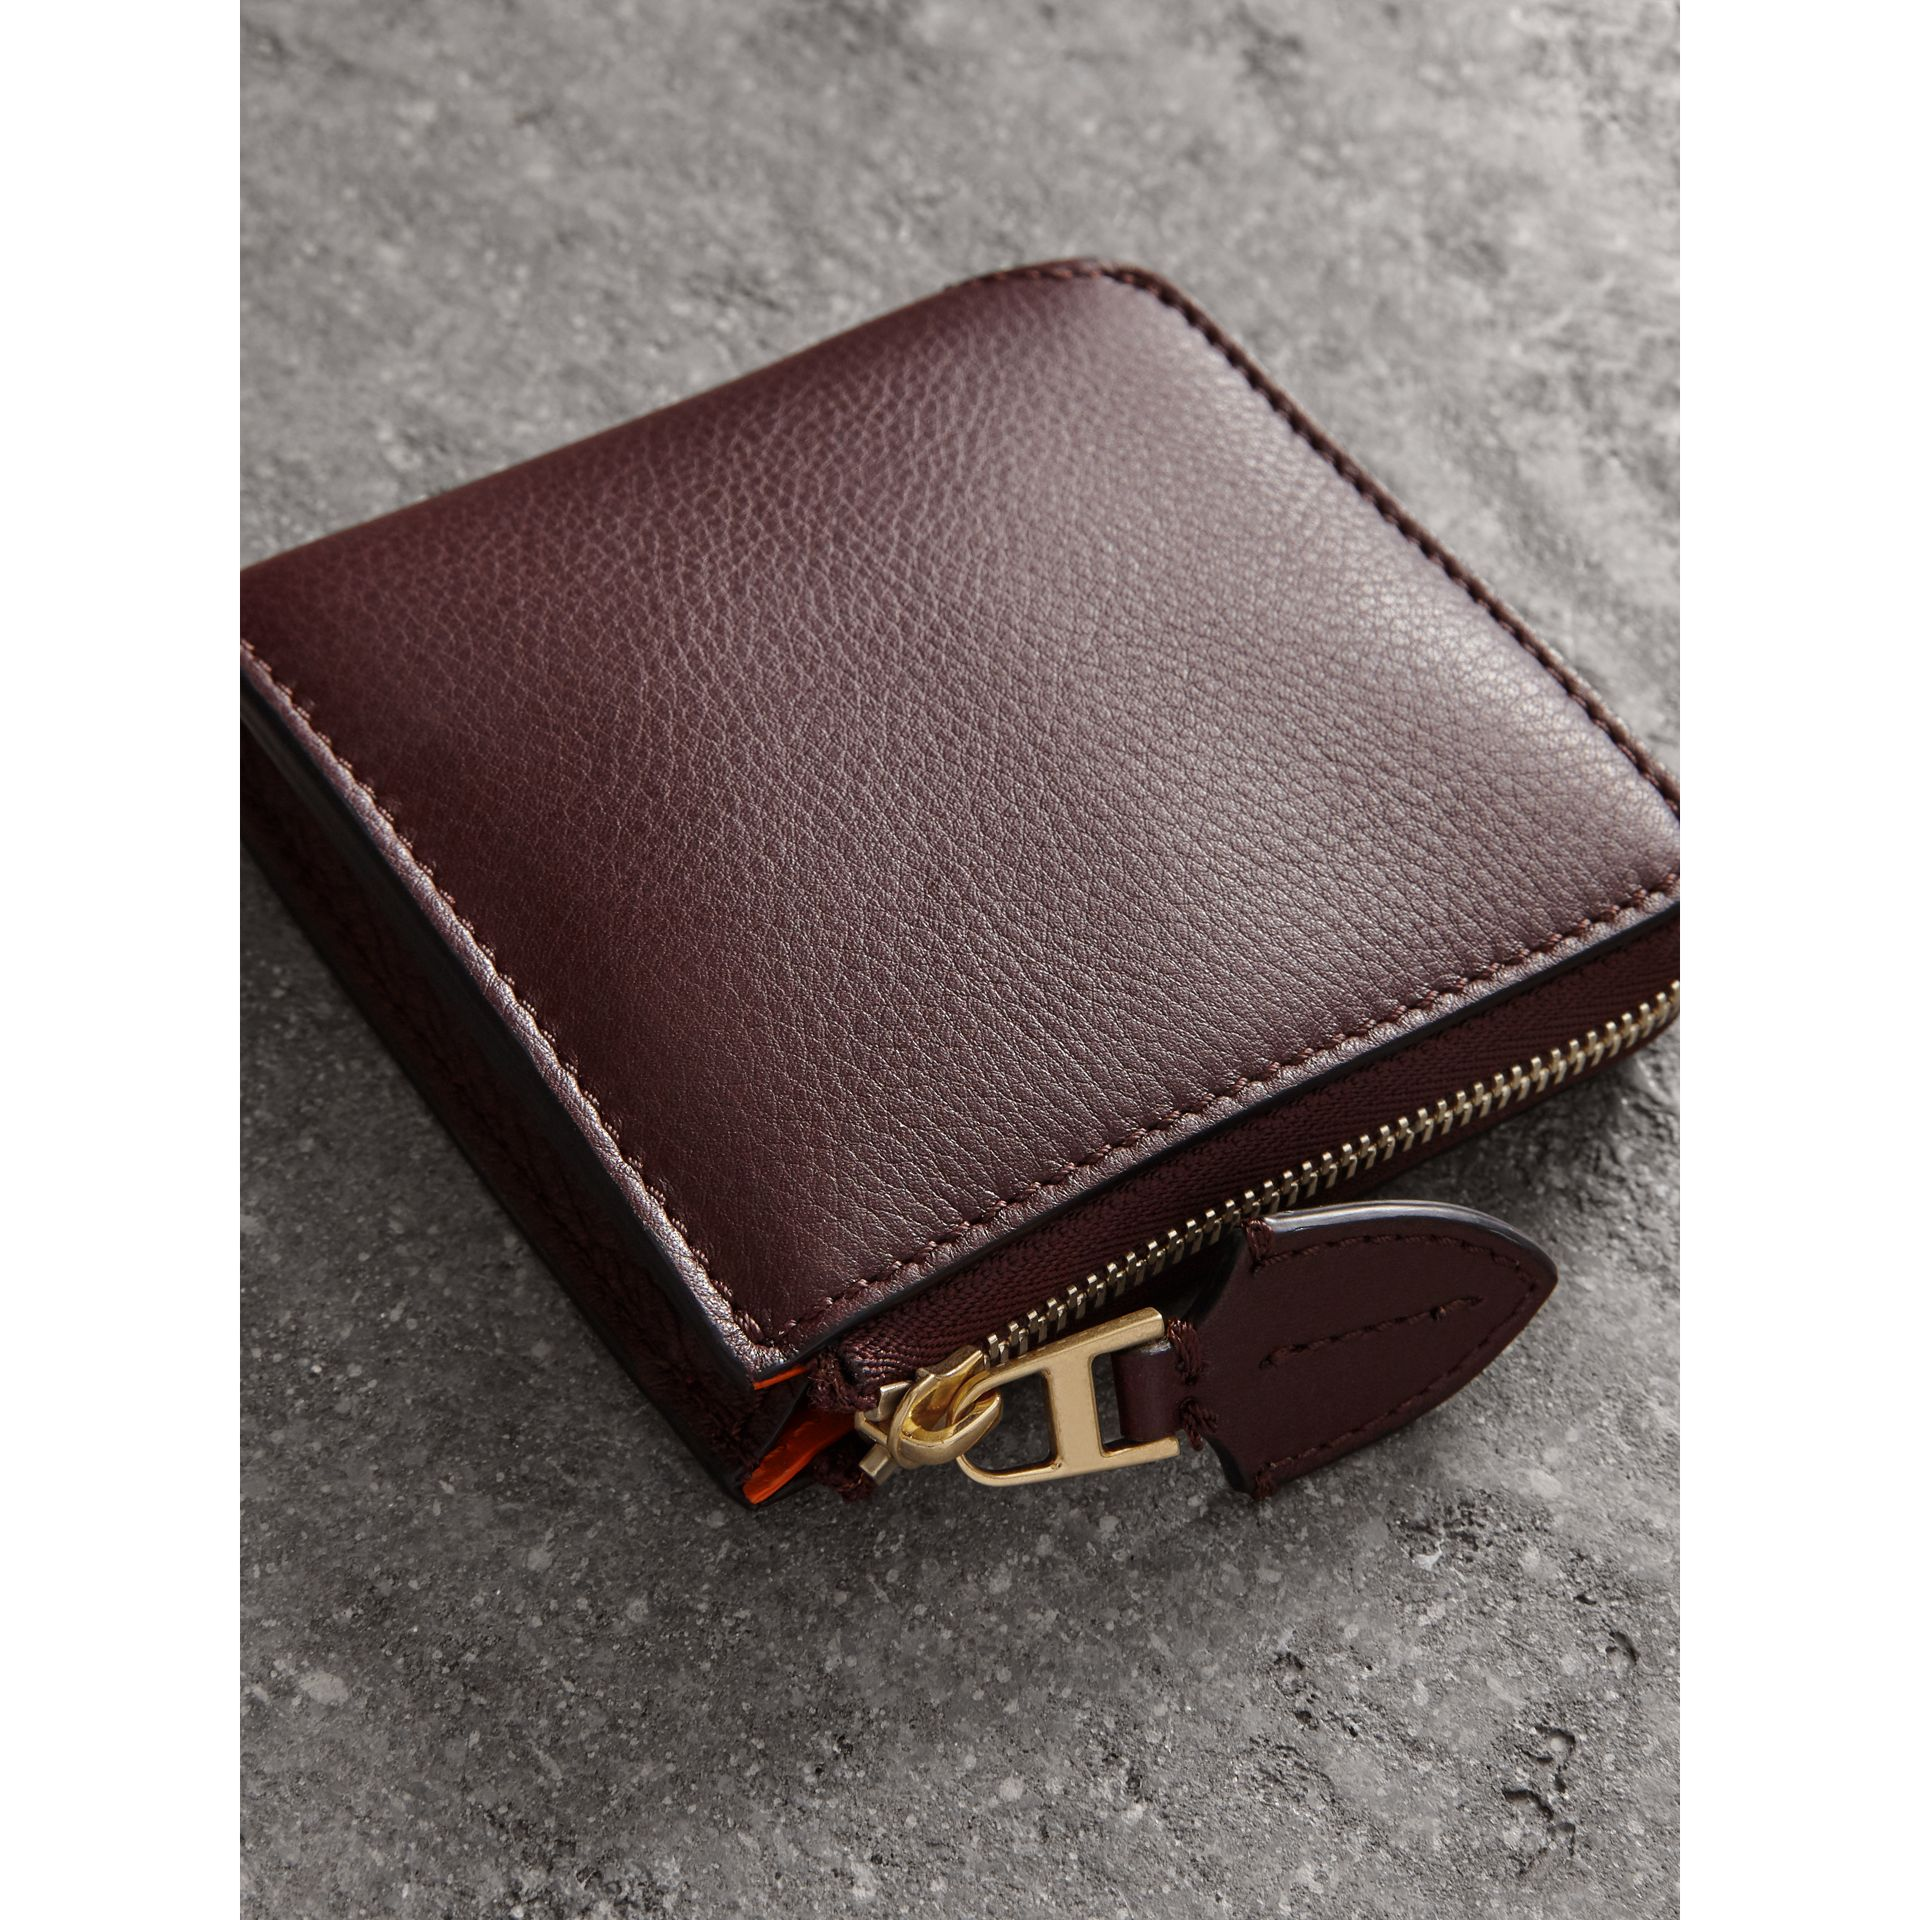 Grainy Leather Square Ziparound Wallet in Deep Claret - Women | Burberry Singapore - gallery image 2